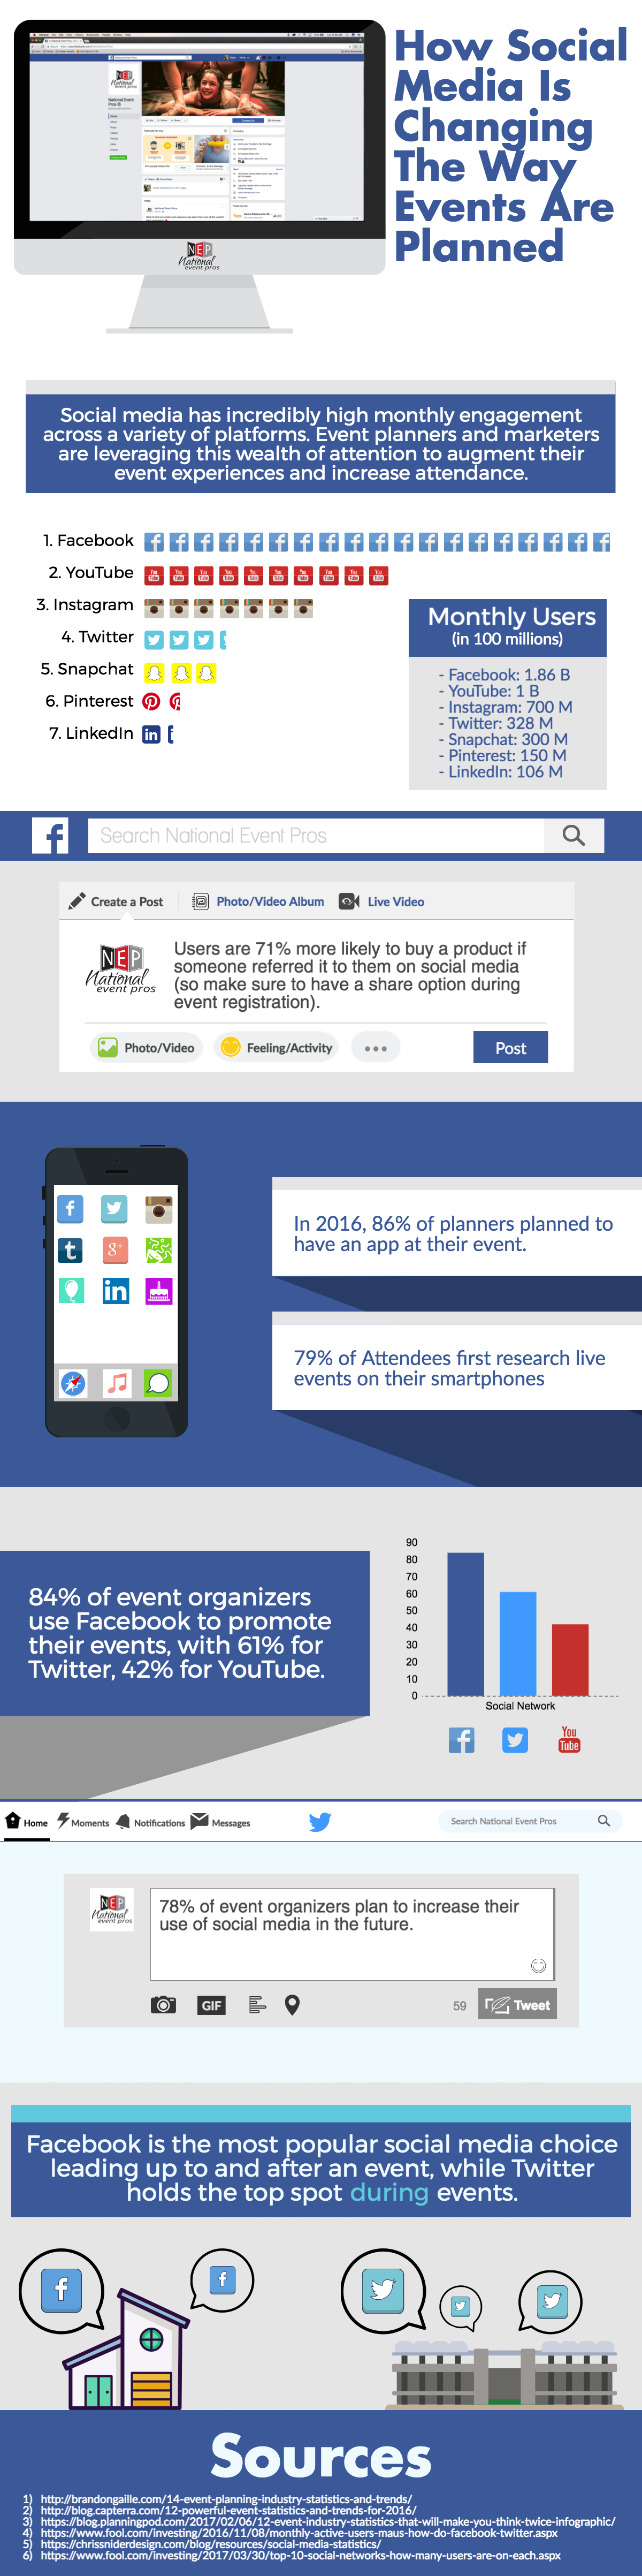 Infographic: How Social Media Is Changing Event Planning